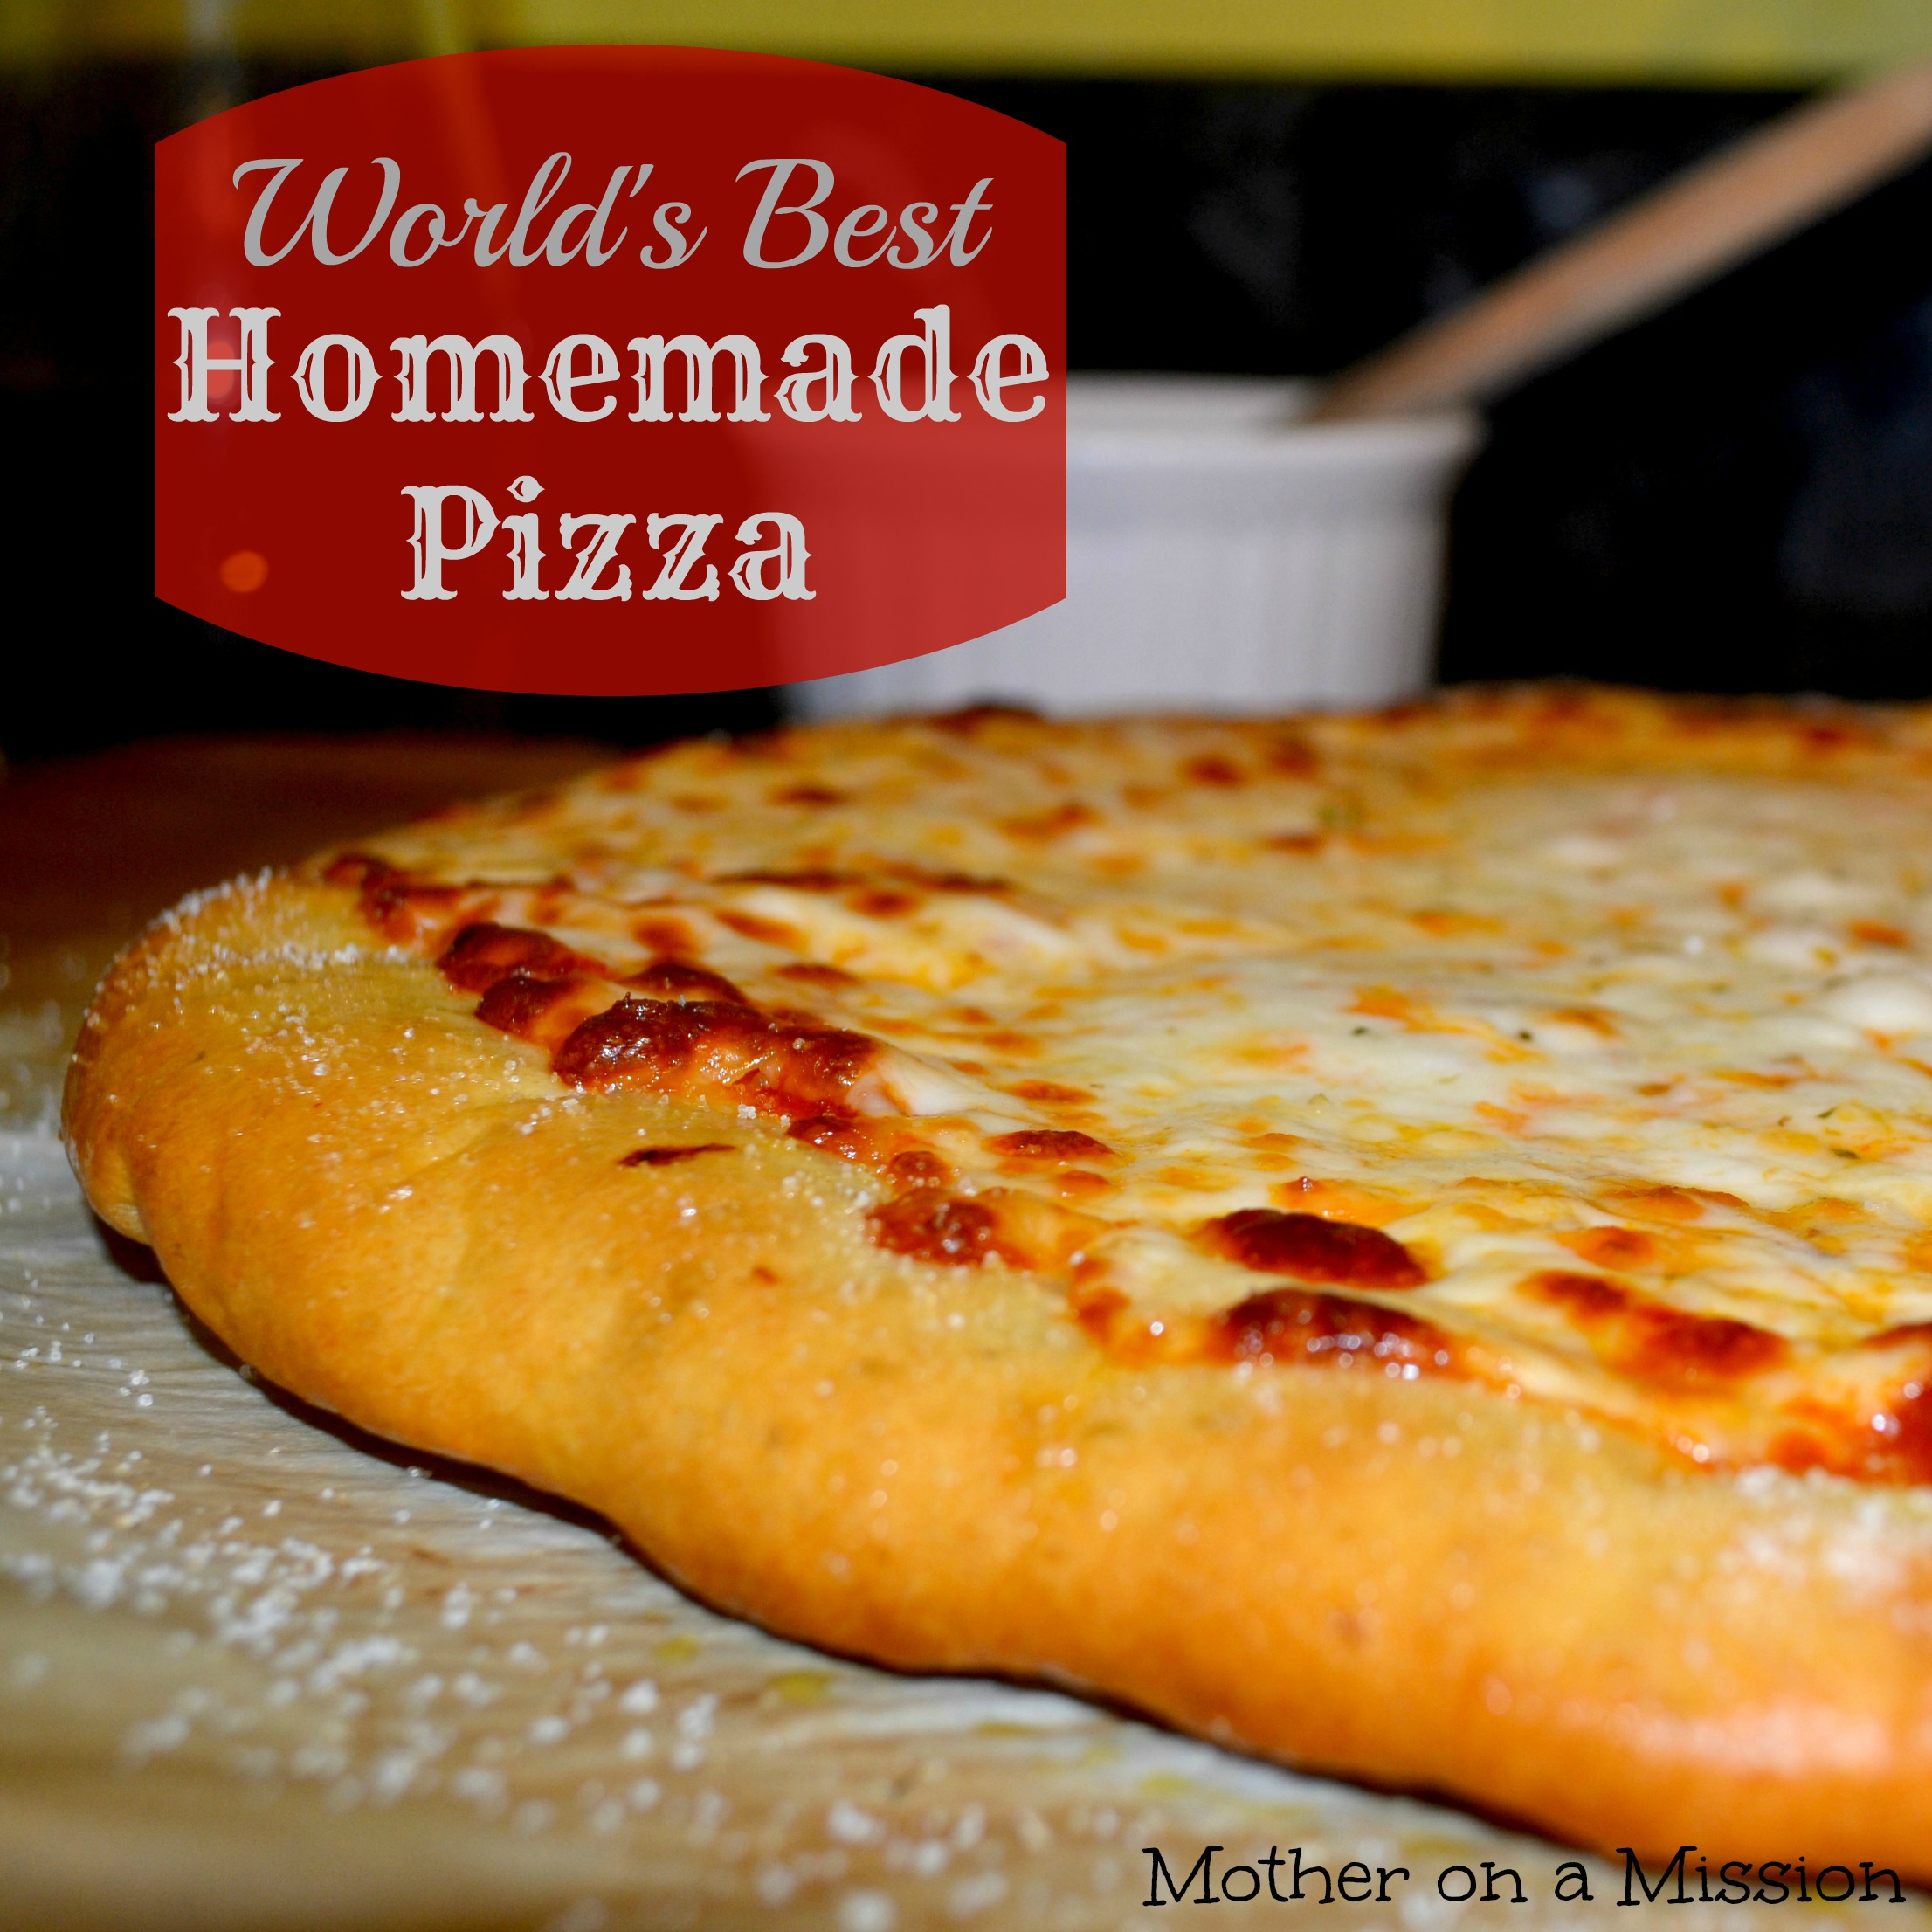 I've been making homemade pizza for many years now and as many of you know it's pretty hard to get a great homemade pizza with similar results as the ones baked in a wood fire oven.